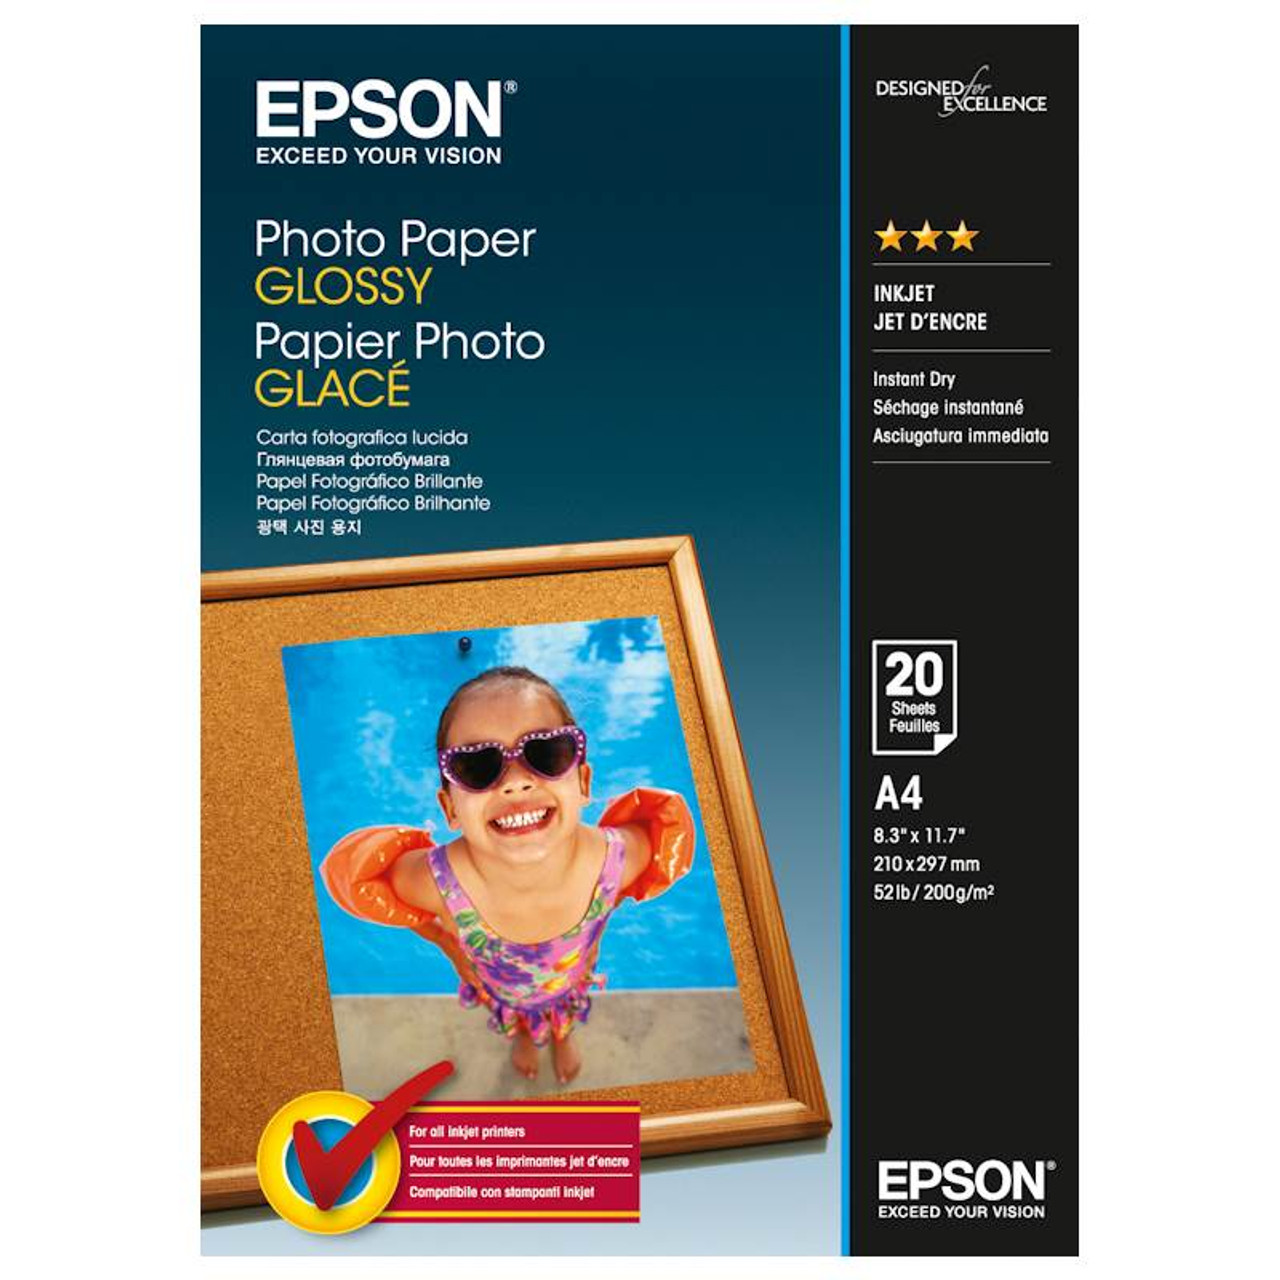 Image for Epson Genuine Photo Paper Glossy A4 50 Sheet (200gsm) - C13S042539 CX Computer Superstore